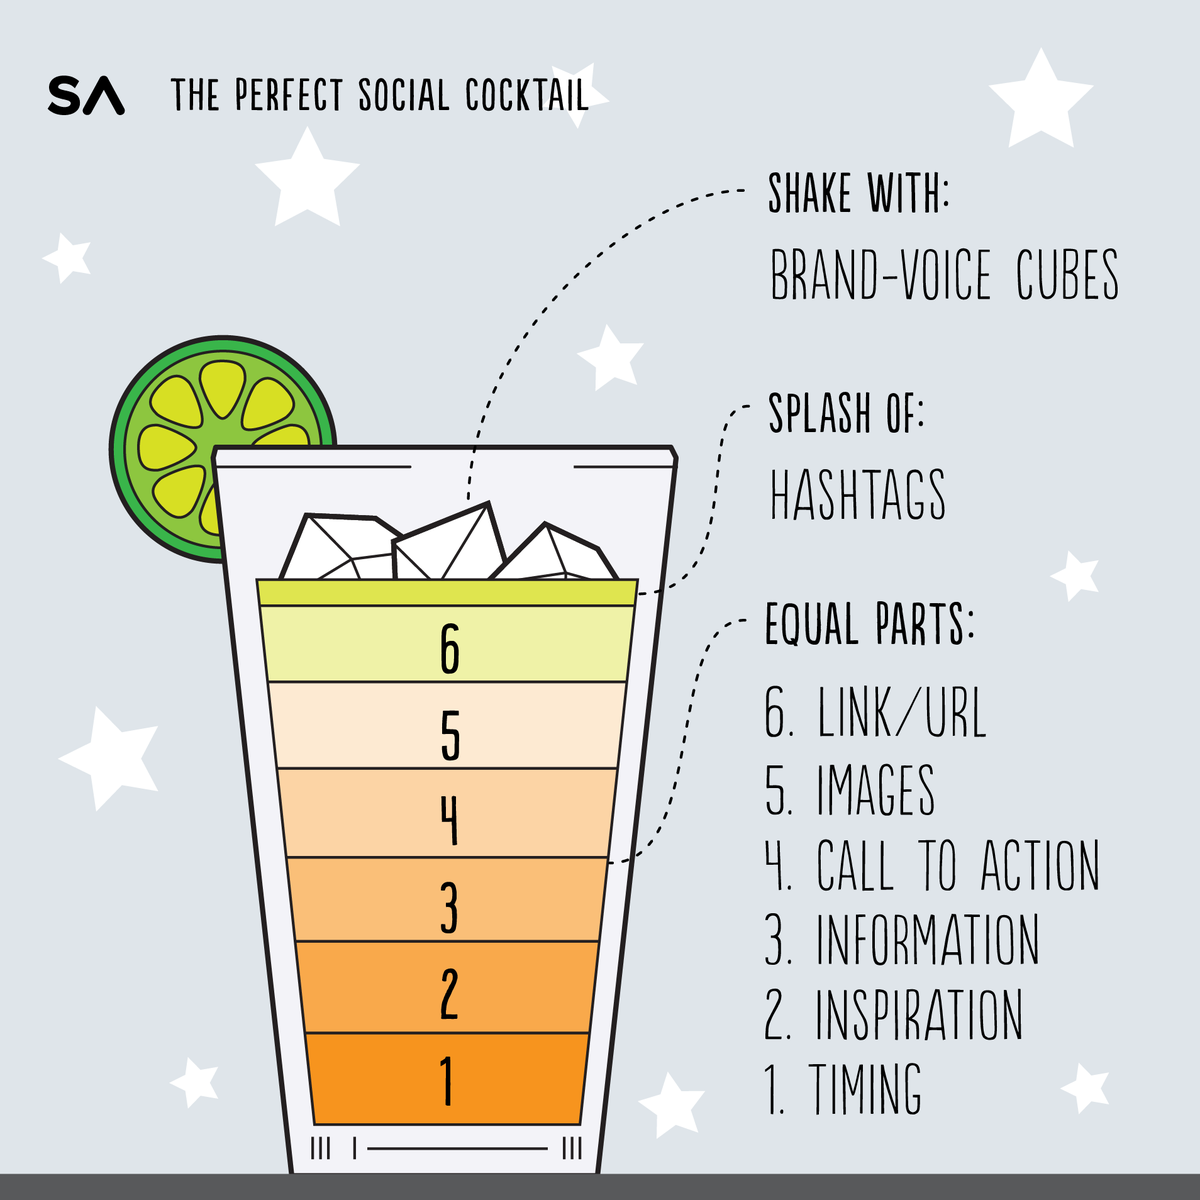 The Perfect Social Media Cocktail http://t.co/mwQ6nlOYTc http://t.co/4vsOYmk1Kt